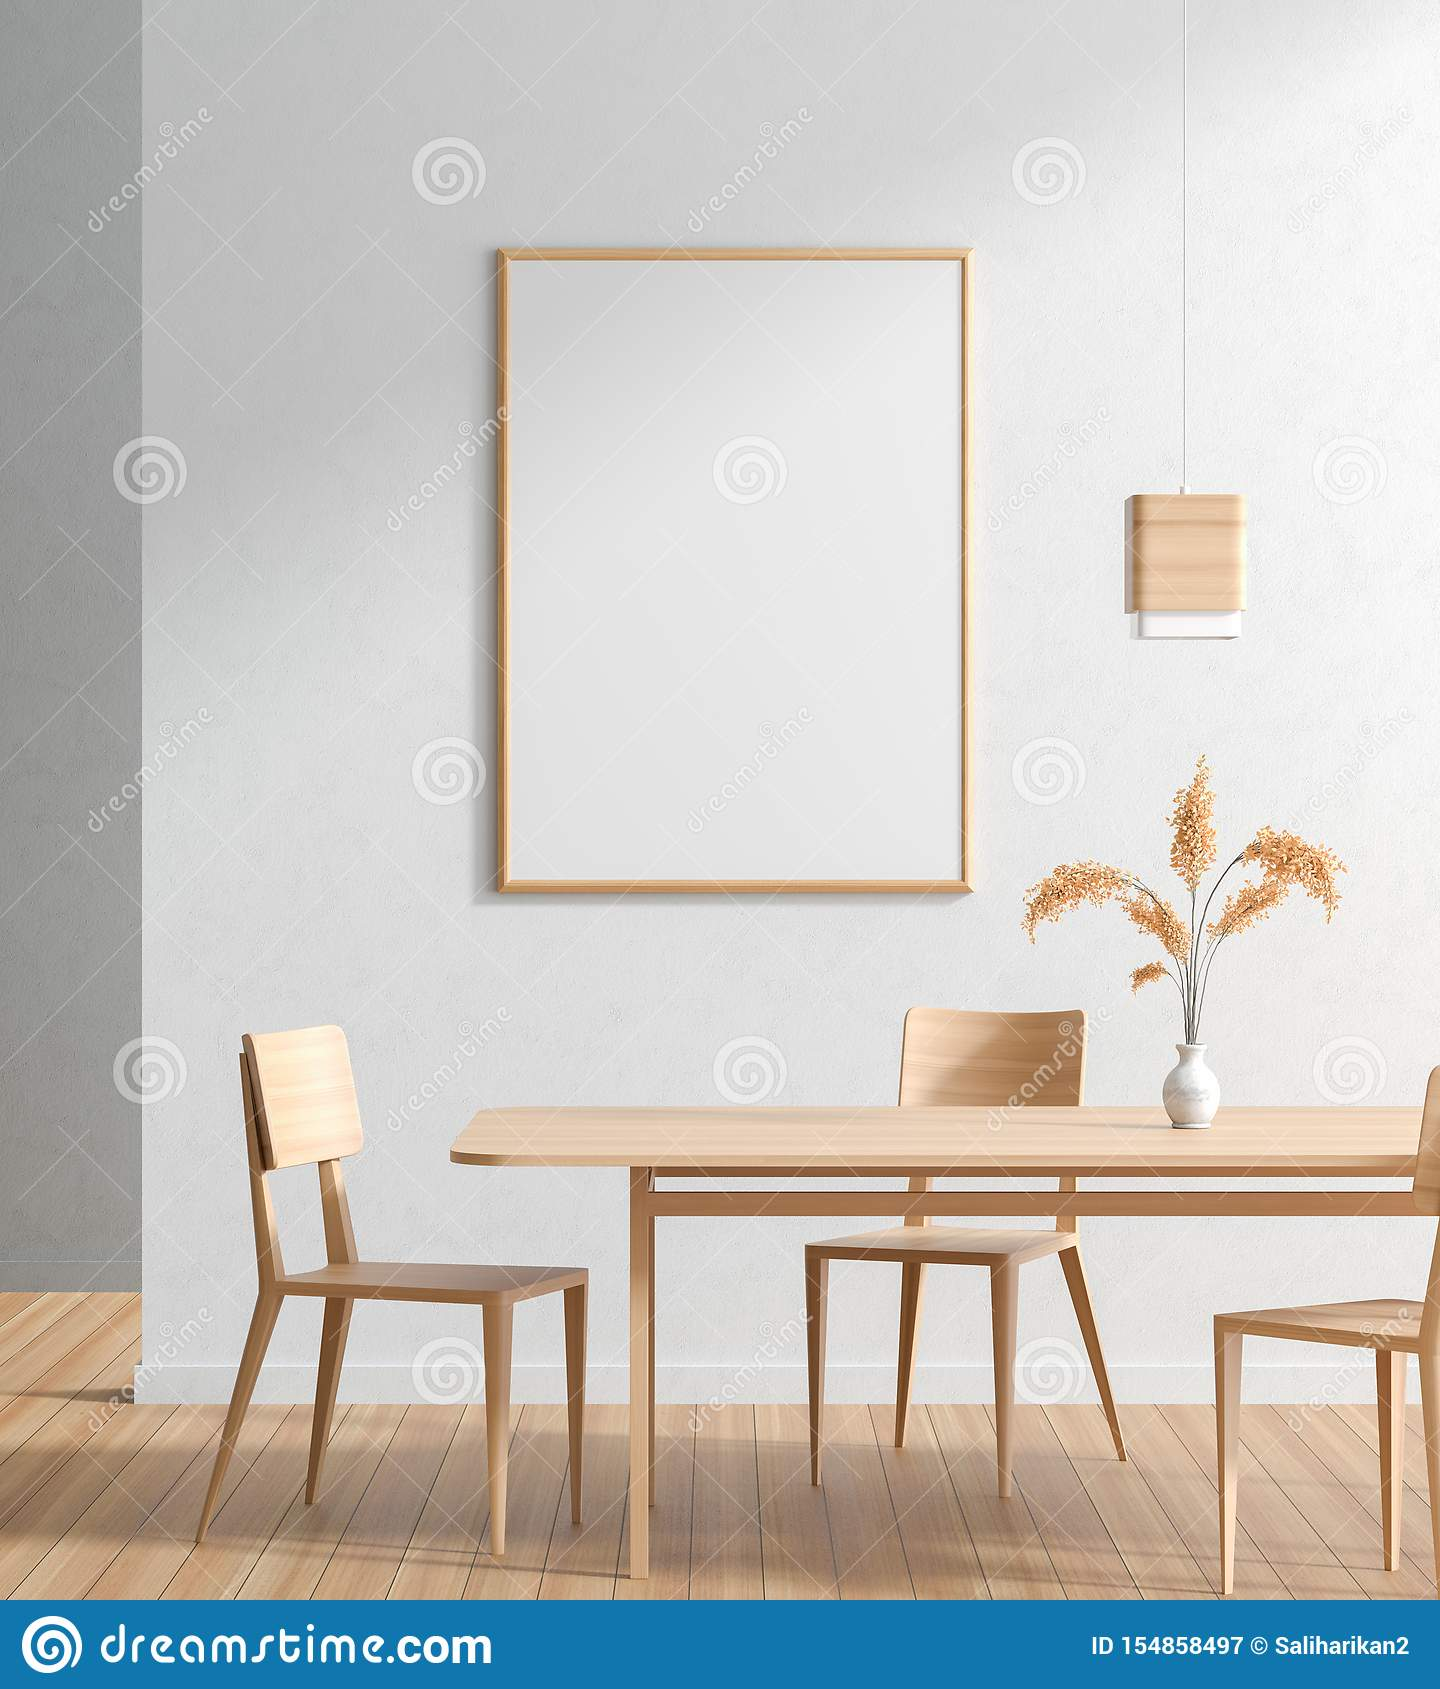 Mock Up Poster Frame In Scandinavian Style Dining Room With